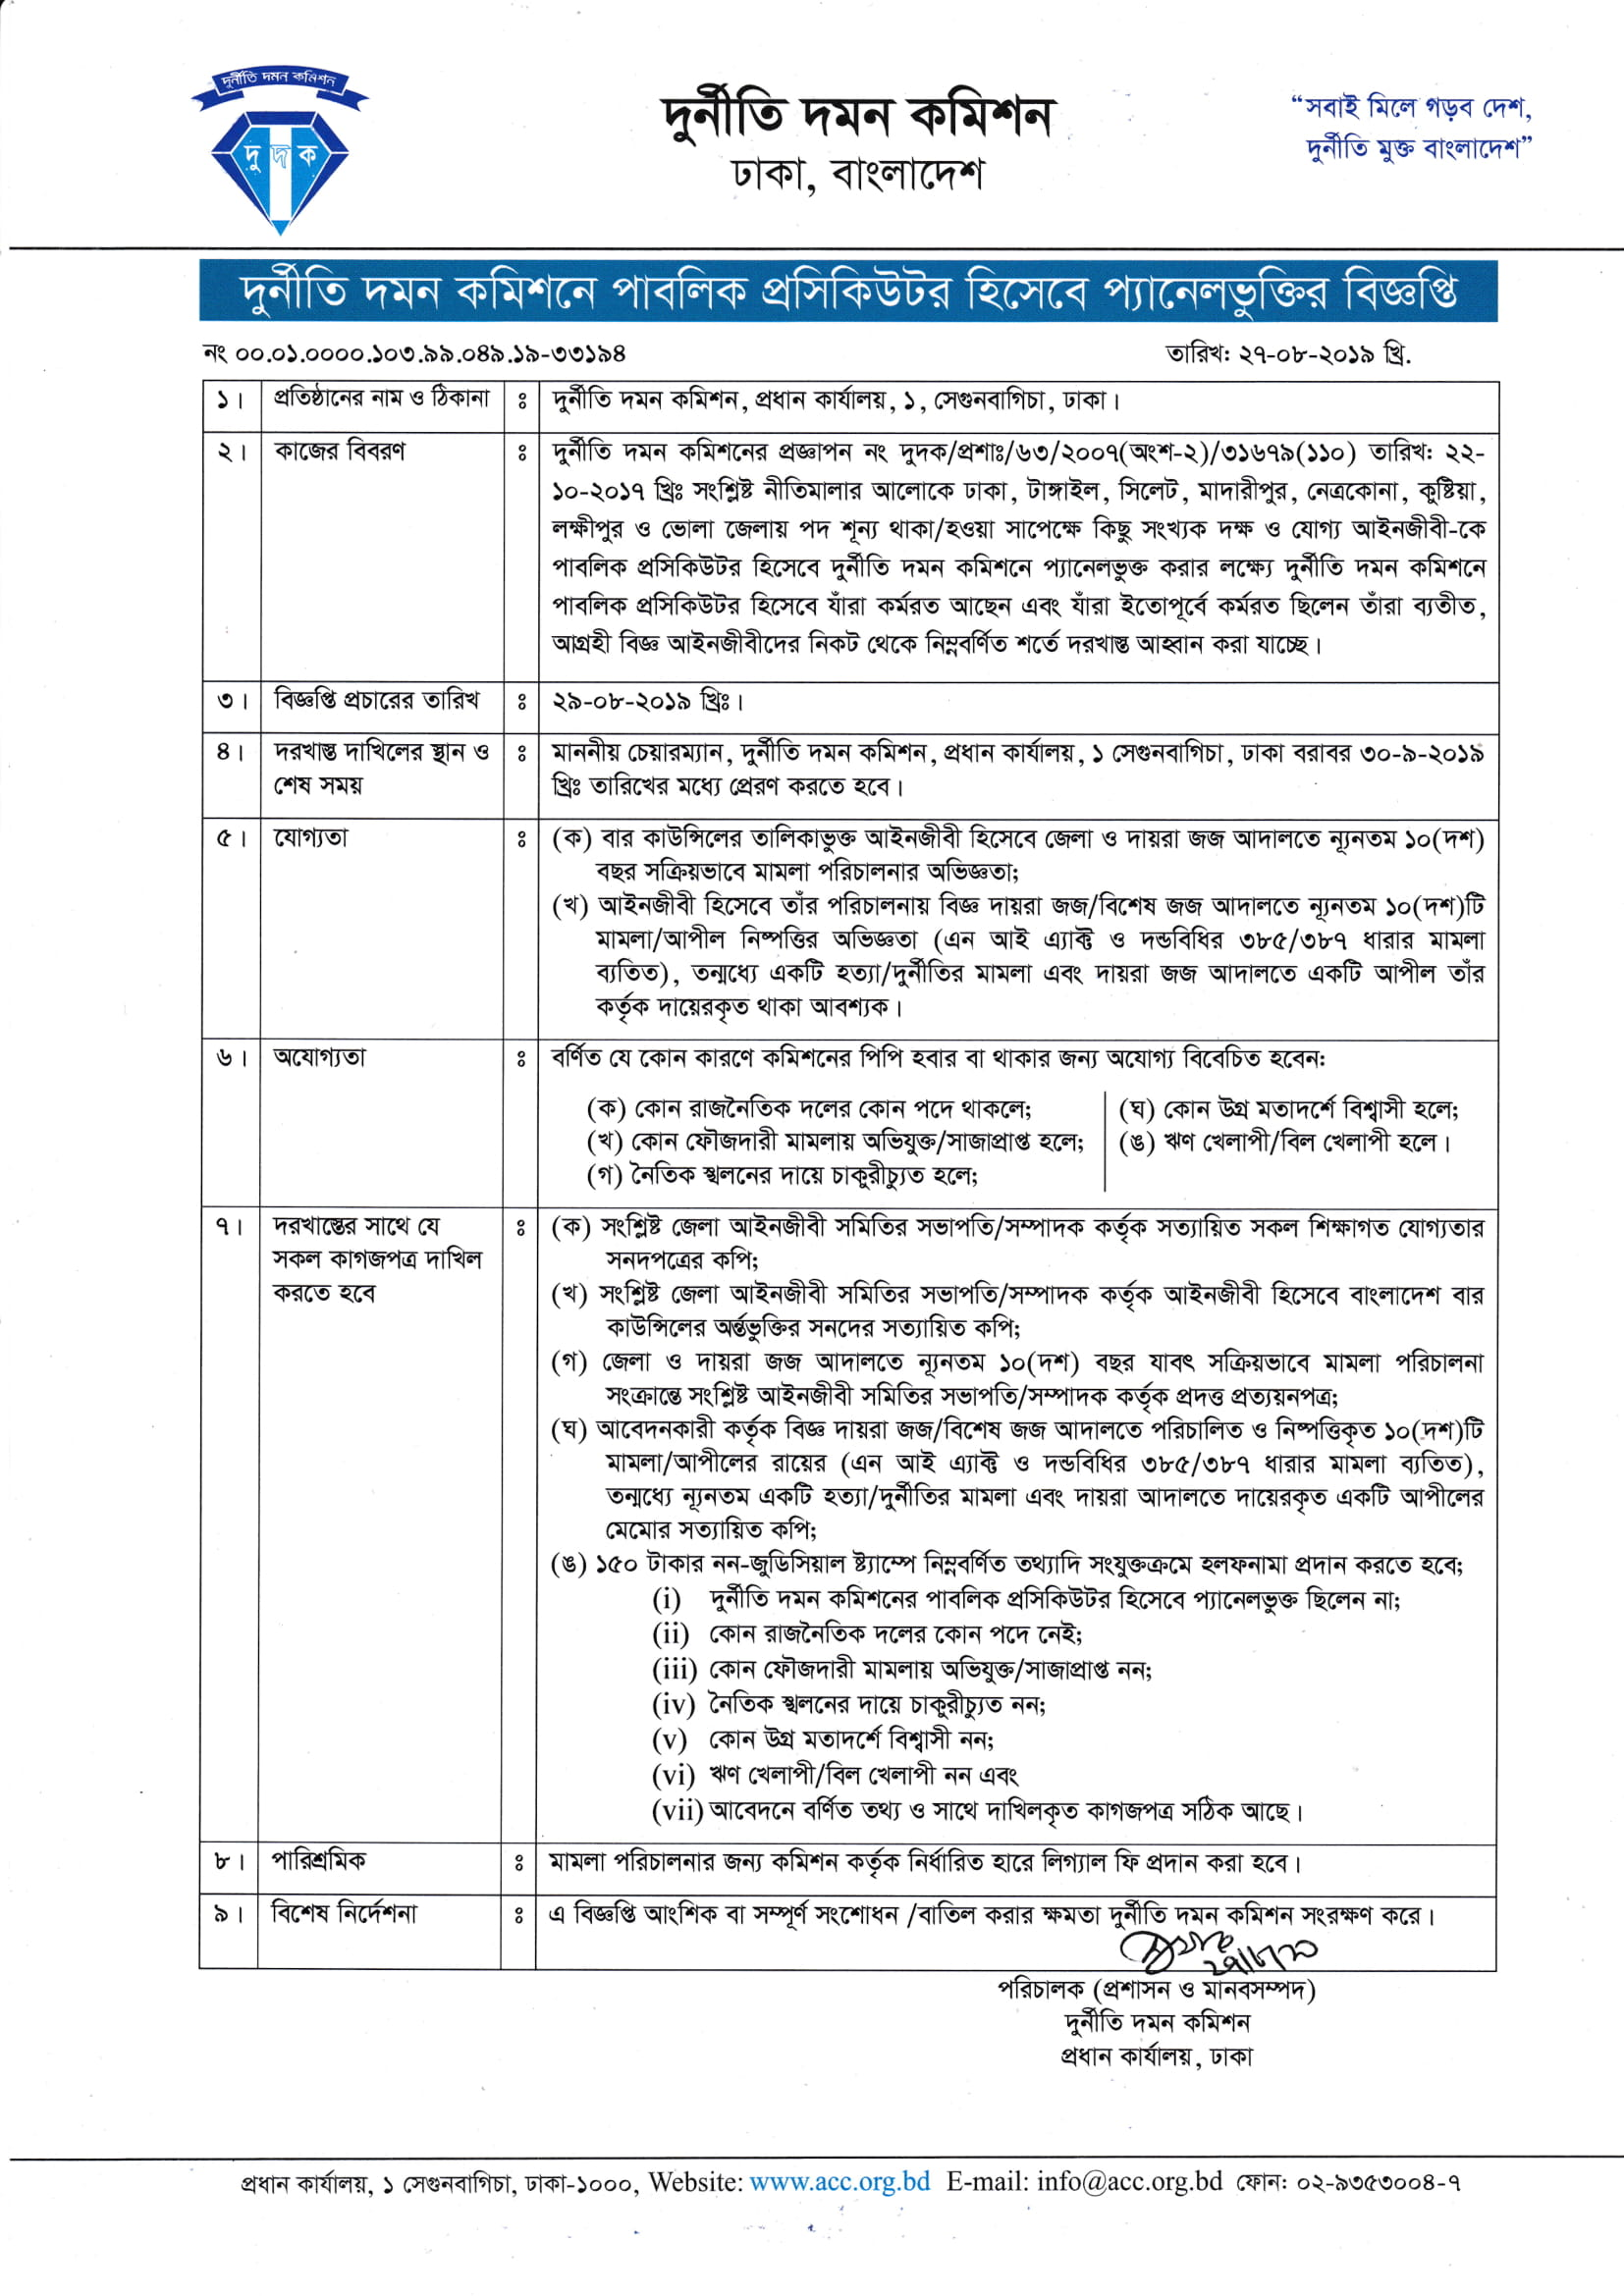 Meghna Group of Industries Job Circular 2019